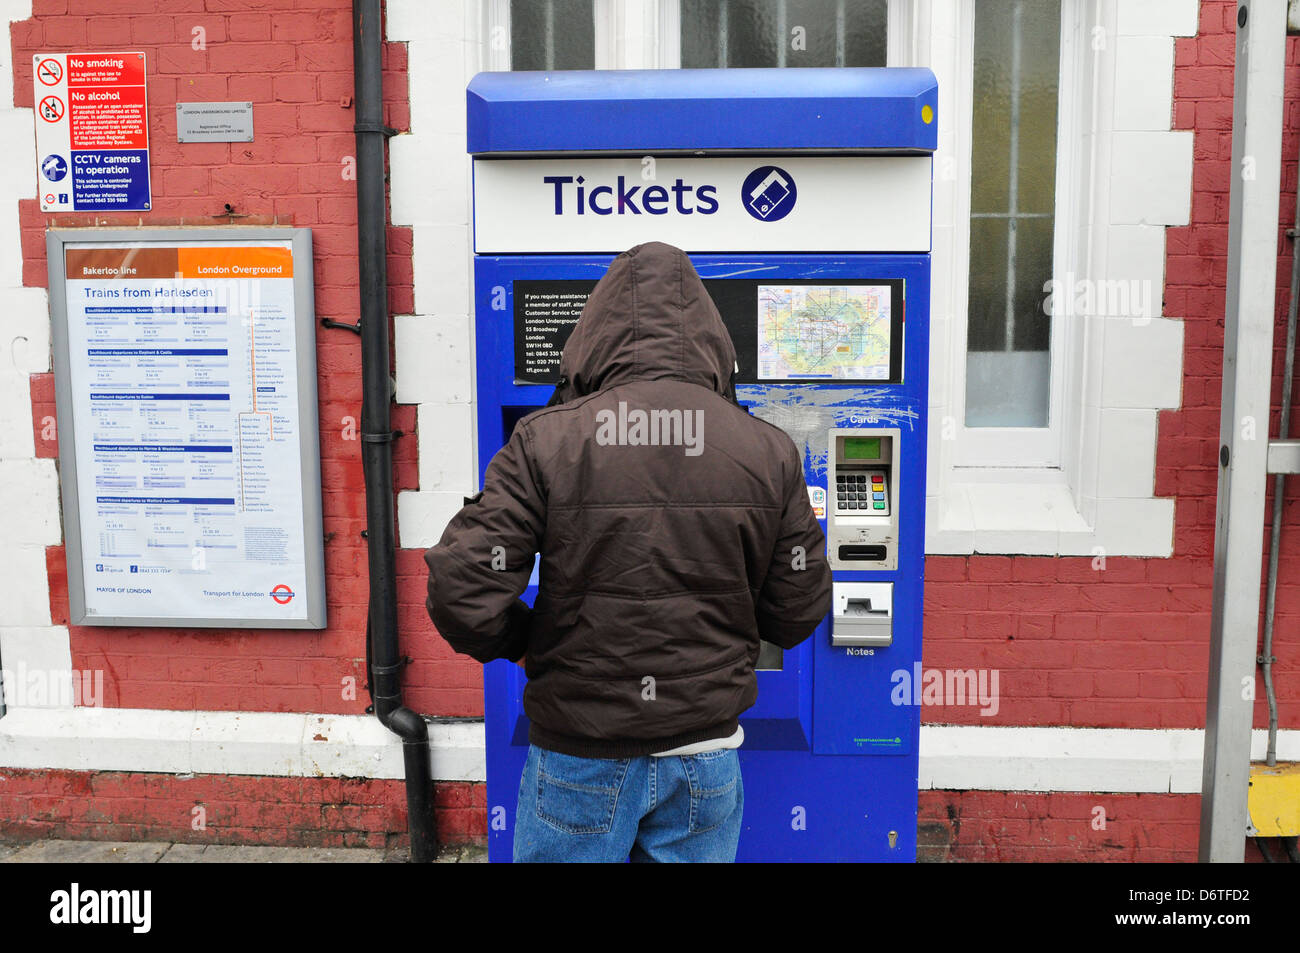 A young man uses a ticket machine at Harlesden station, London, UK - Stock Image